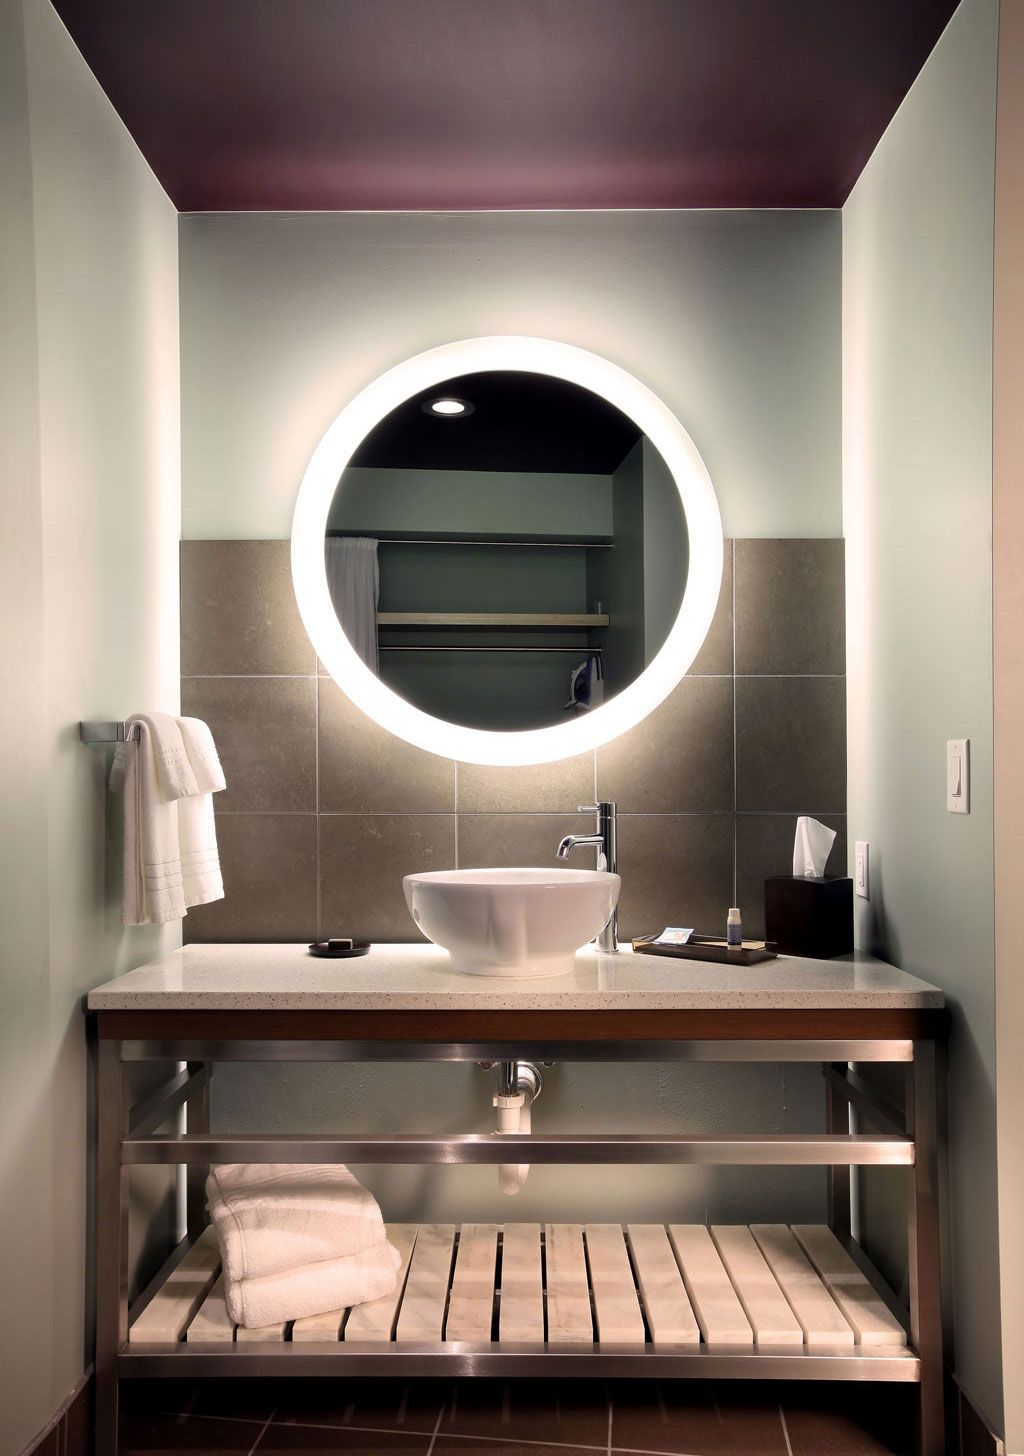 Trinity™ Lighted Mirror By Electric Mirror. Available At ProSource.